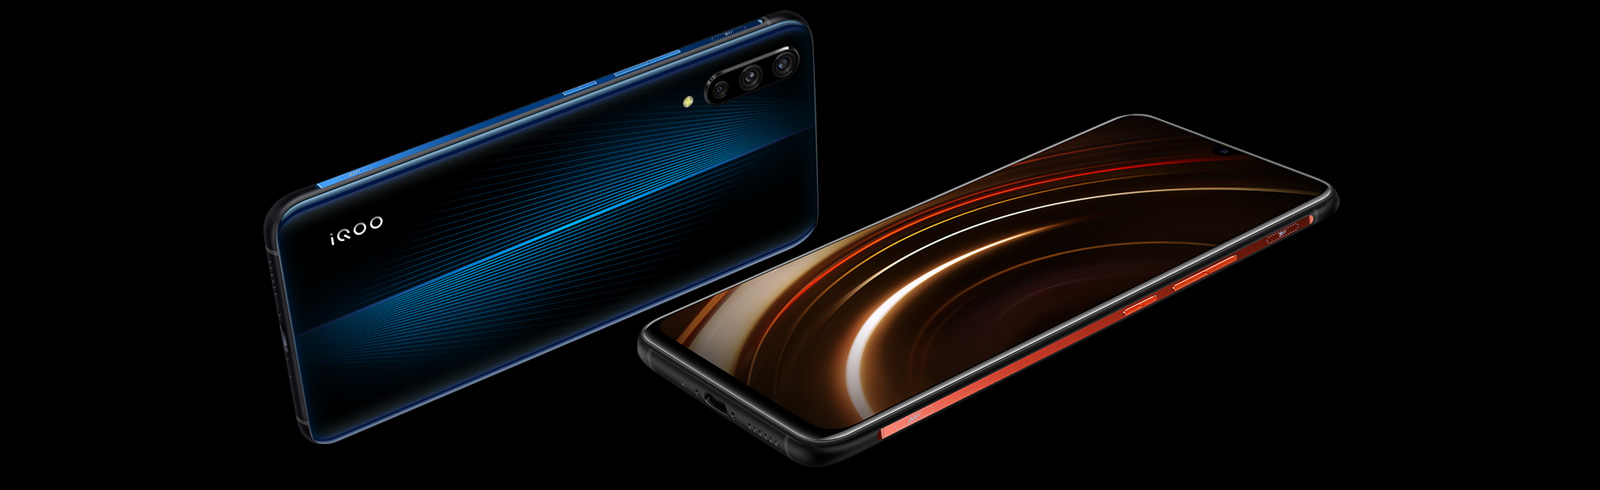 Vivo announced the iQOO with Snapdragon 855, ambient LED lights, three rear cameras